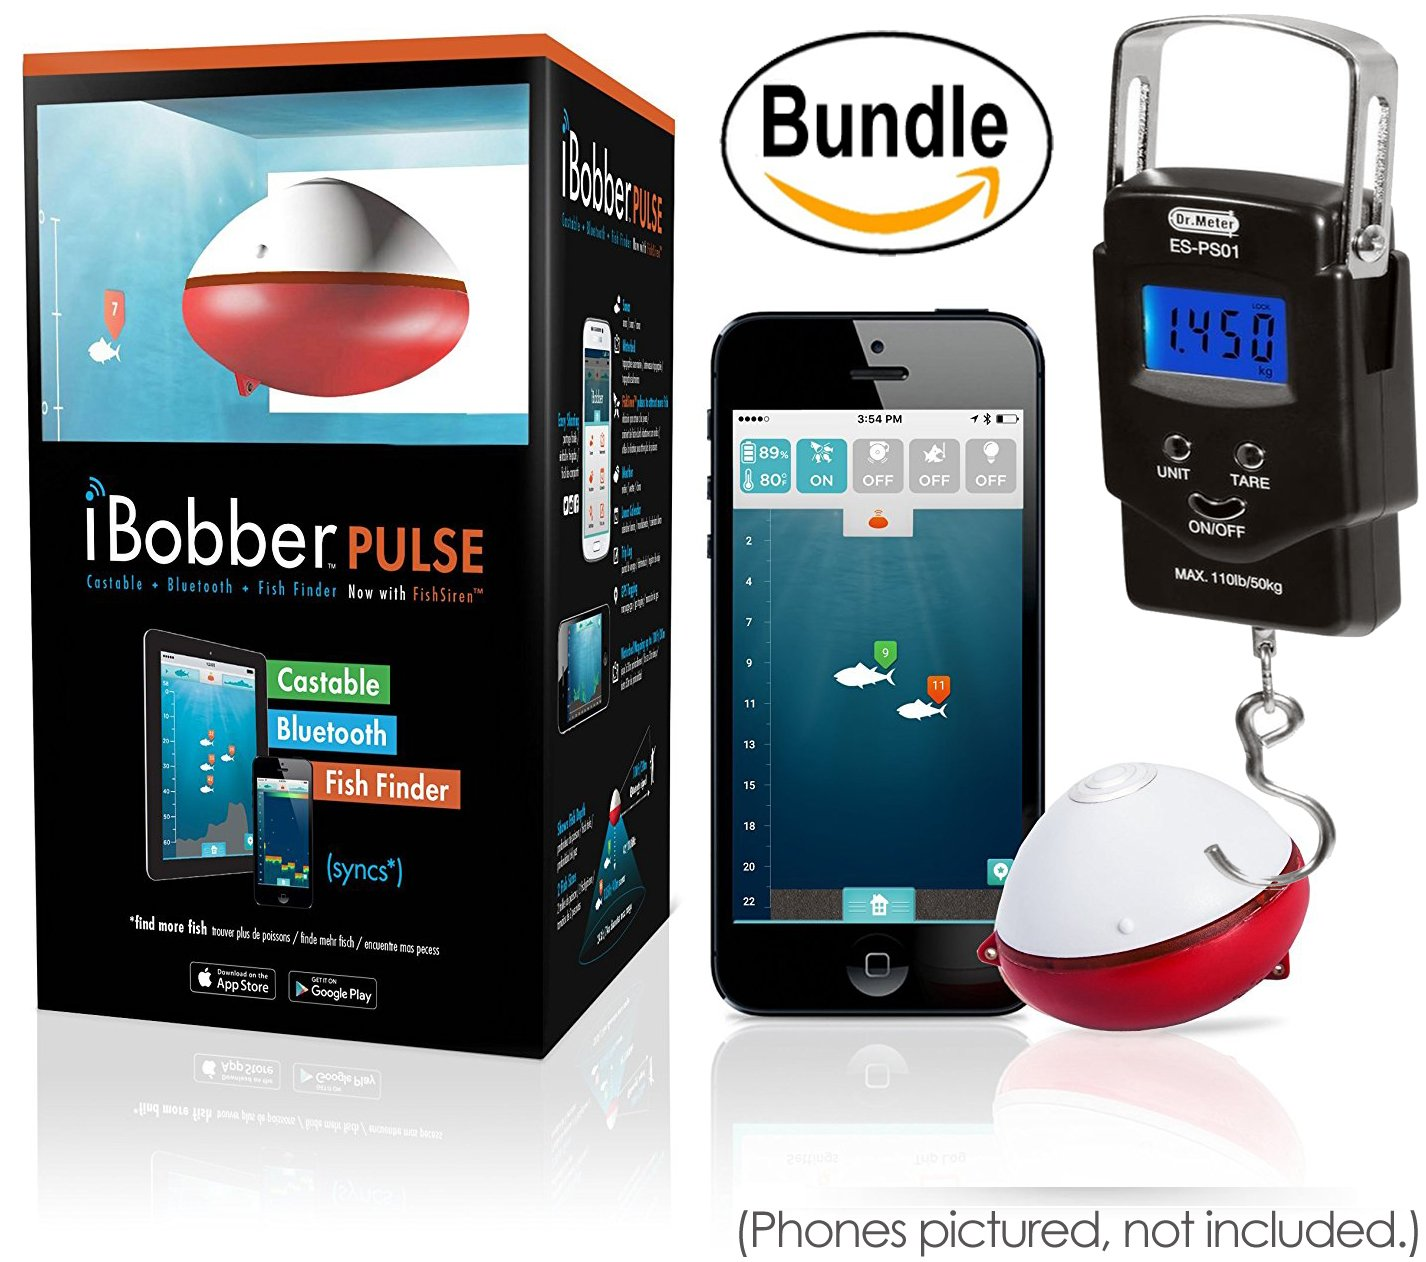 iBobber Pulse with Fish Attractor Wireless Bluetooth Smart Fish Finder for iOS and Android devices & Dr. Meter PS01 110lb/50kg Electronic Balance Digital Fishing Postal Hanging Hook Scale (Bundle) by iBobber Bundle